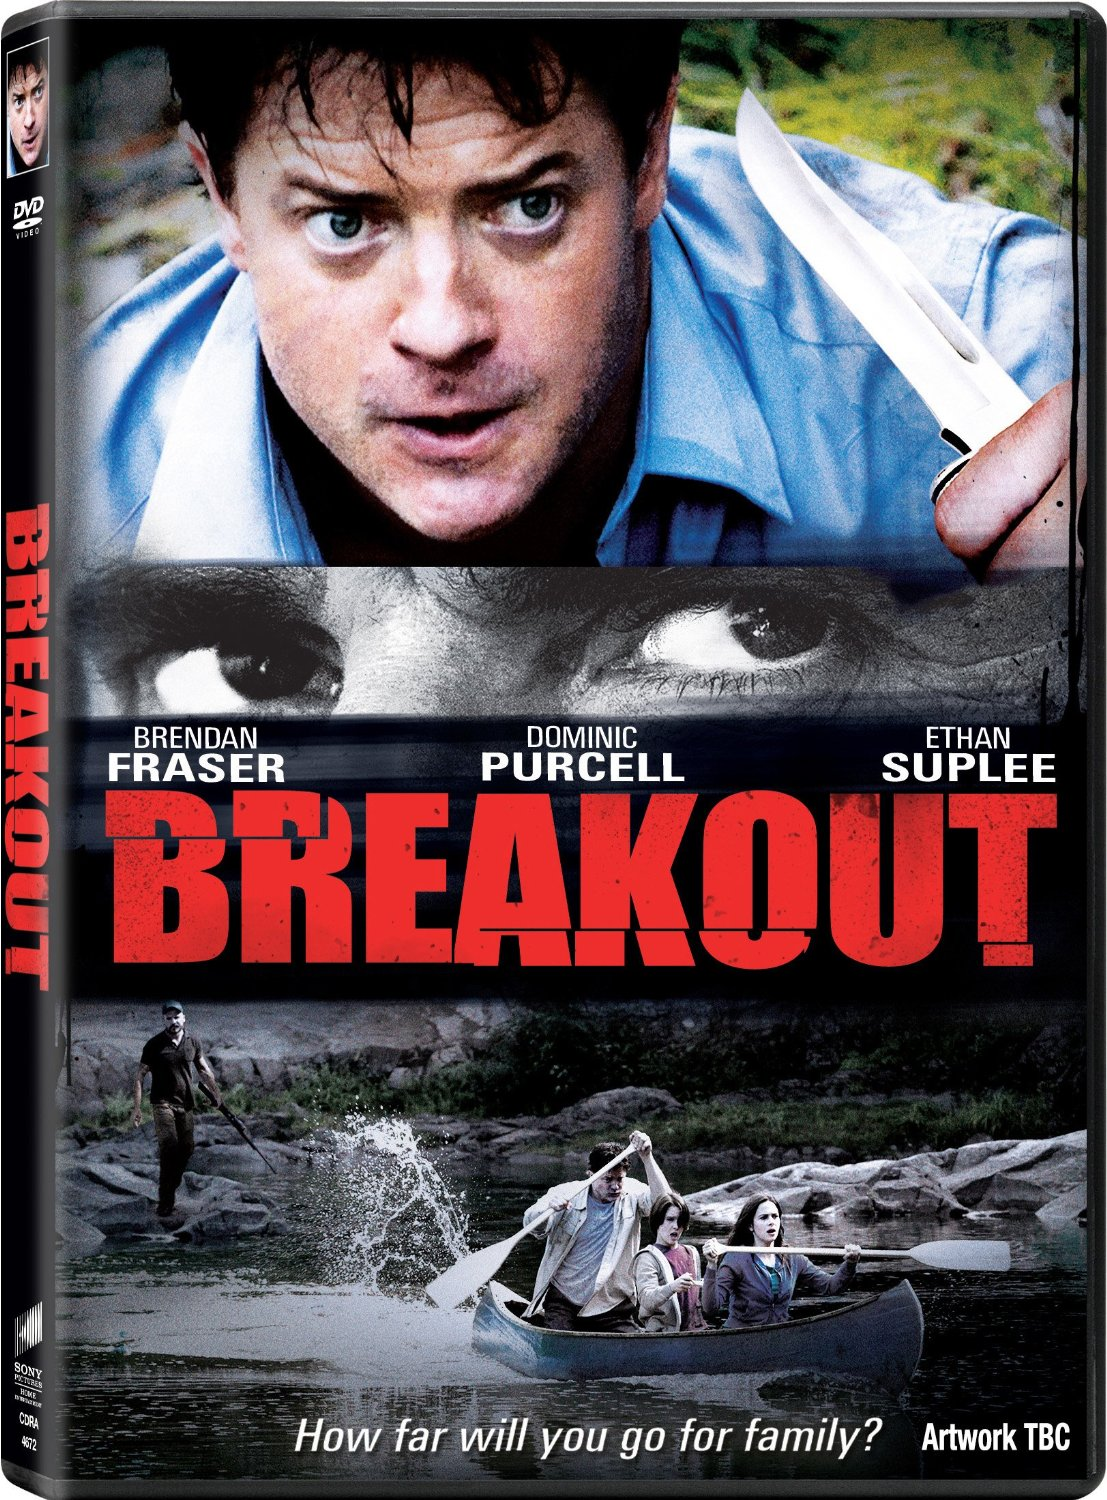 Breakout - Weekend Di Paura